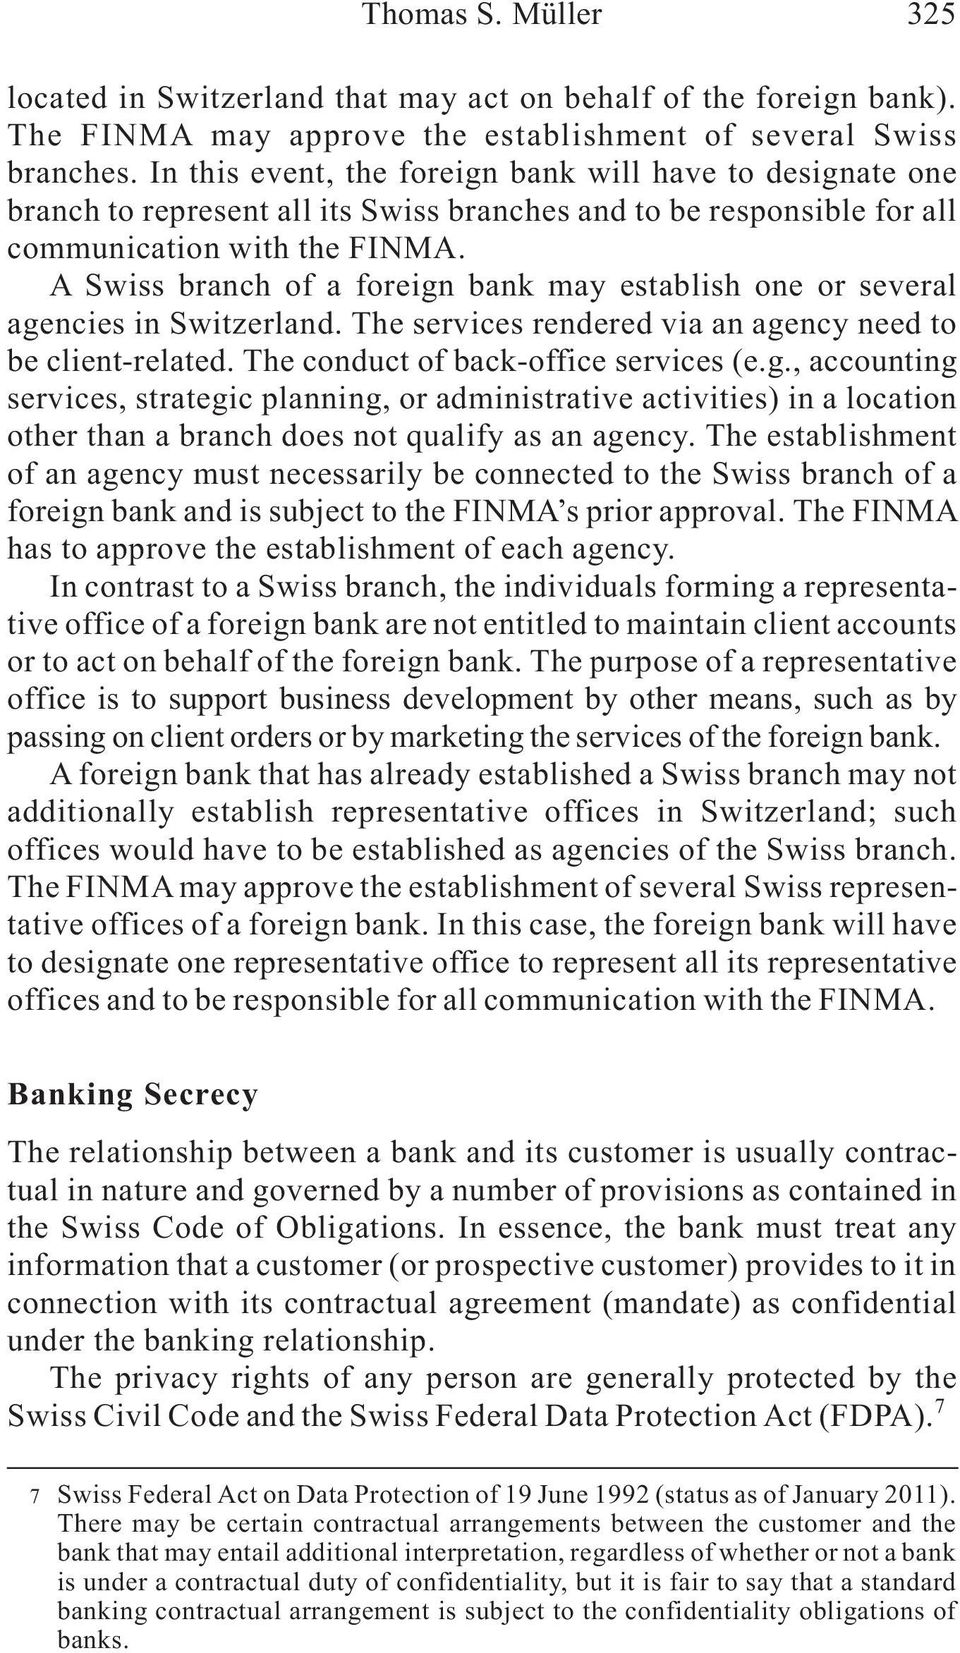 A Swiss branch of a foreign bank may establish one or several agencies in Switzerland. The services rendered via an agency need to be client-related. The conduct of back-office services (e.g., accounting services, strategic planning, or administrative activities) in a location other than a branch does not qualify as an agency.